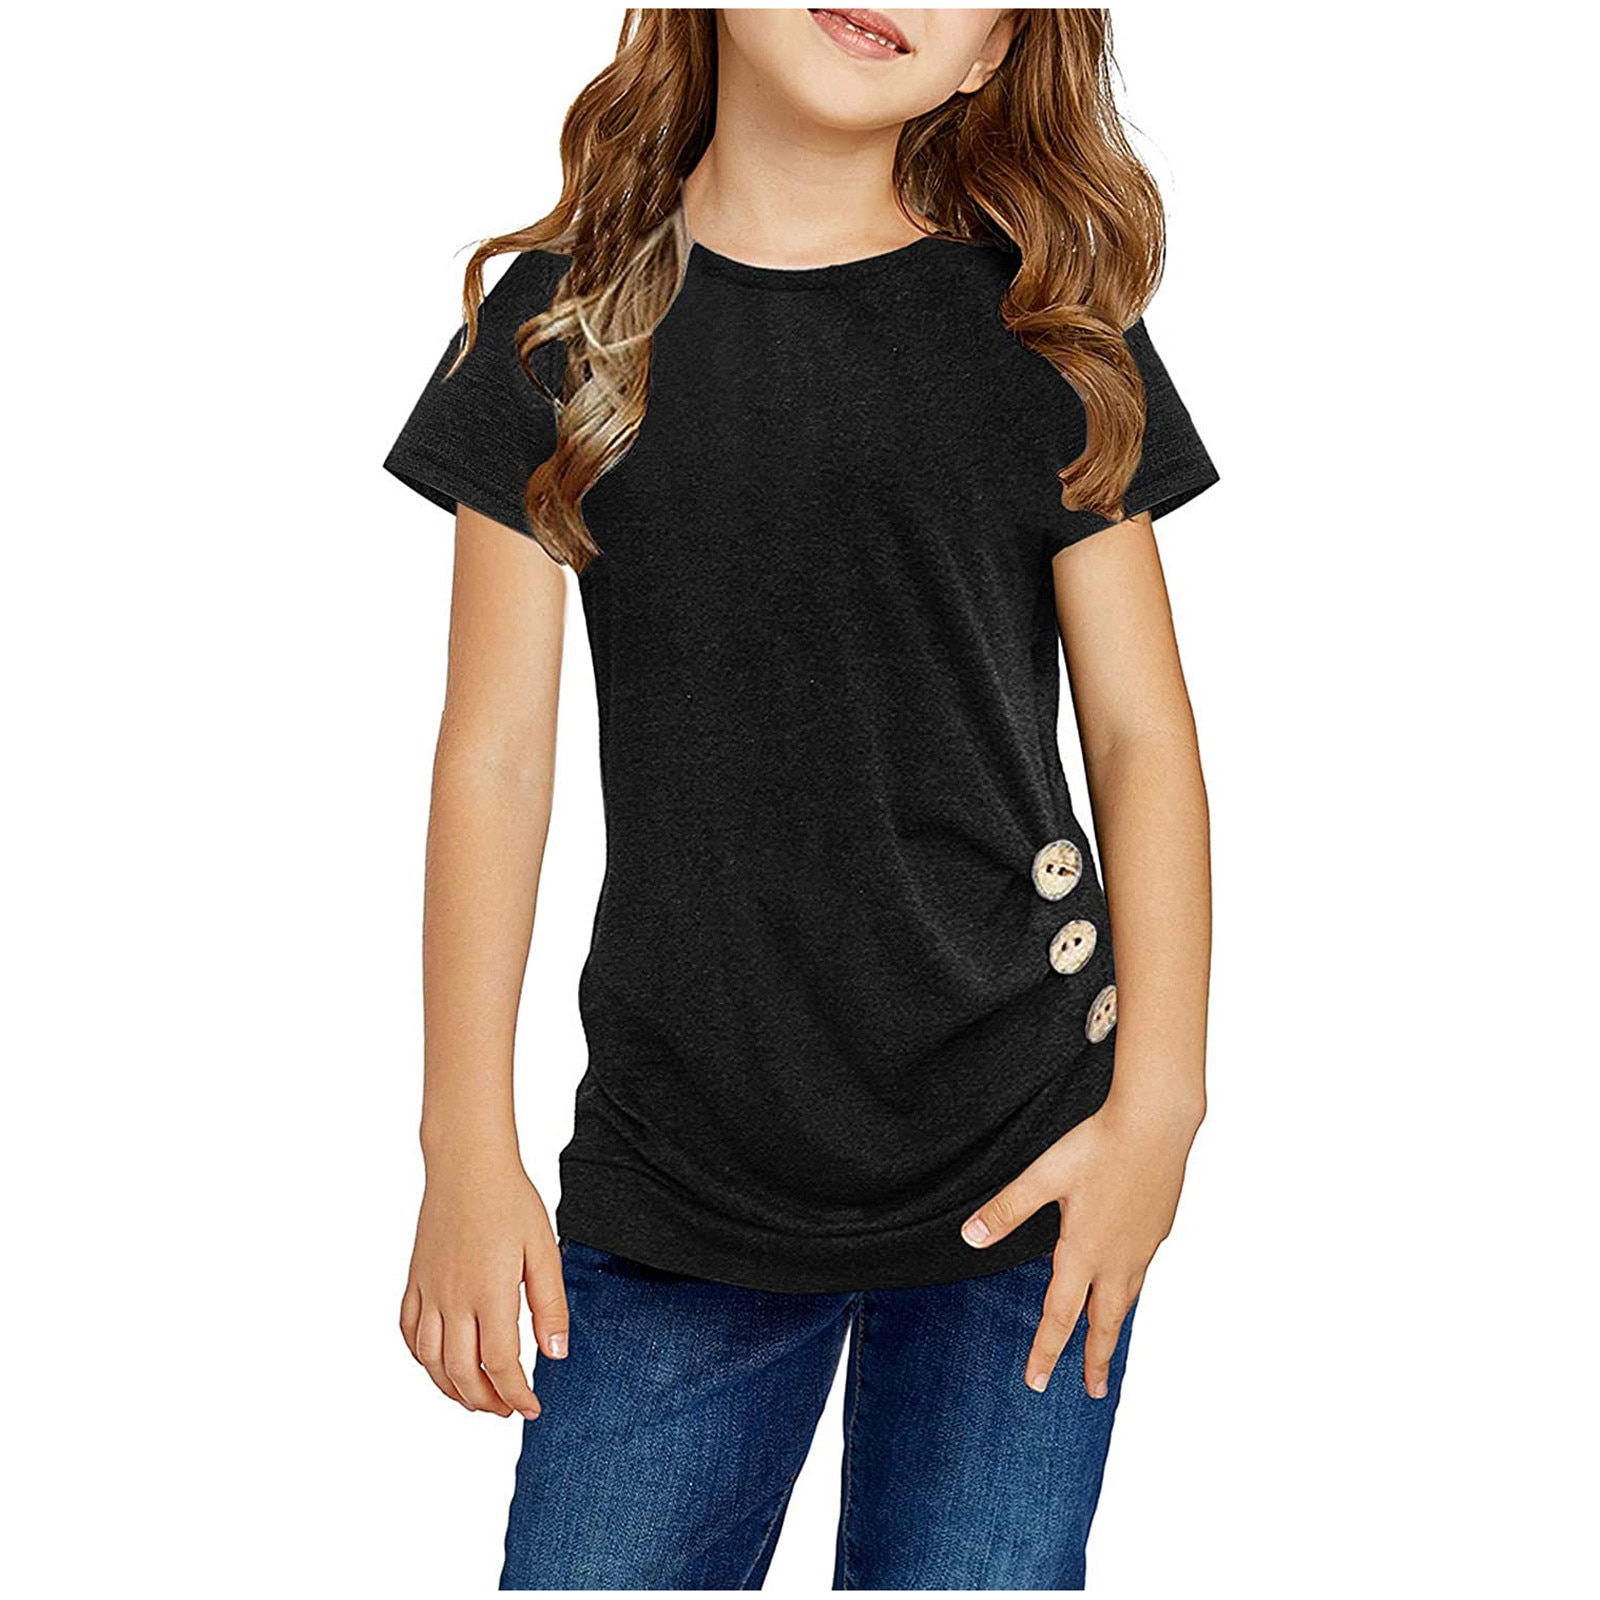 Kids T-Shirt Tee Girls Casual Tunic Tops Knot Front Button Short Sleeve Blouse baby tops set фут�